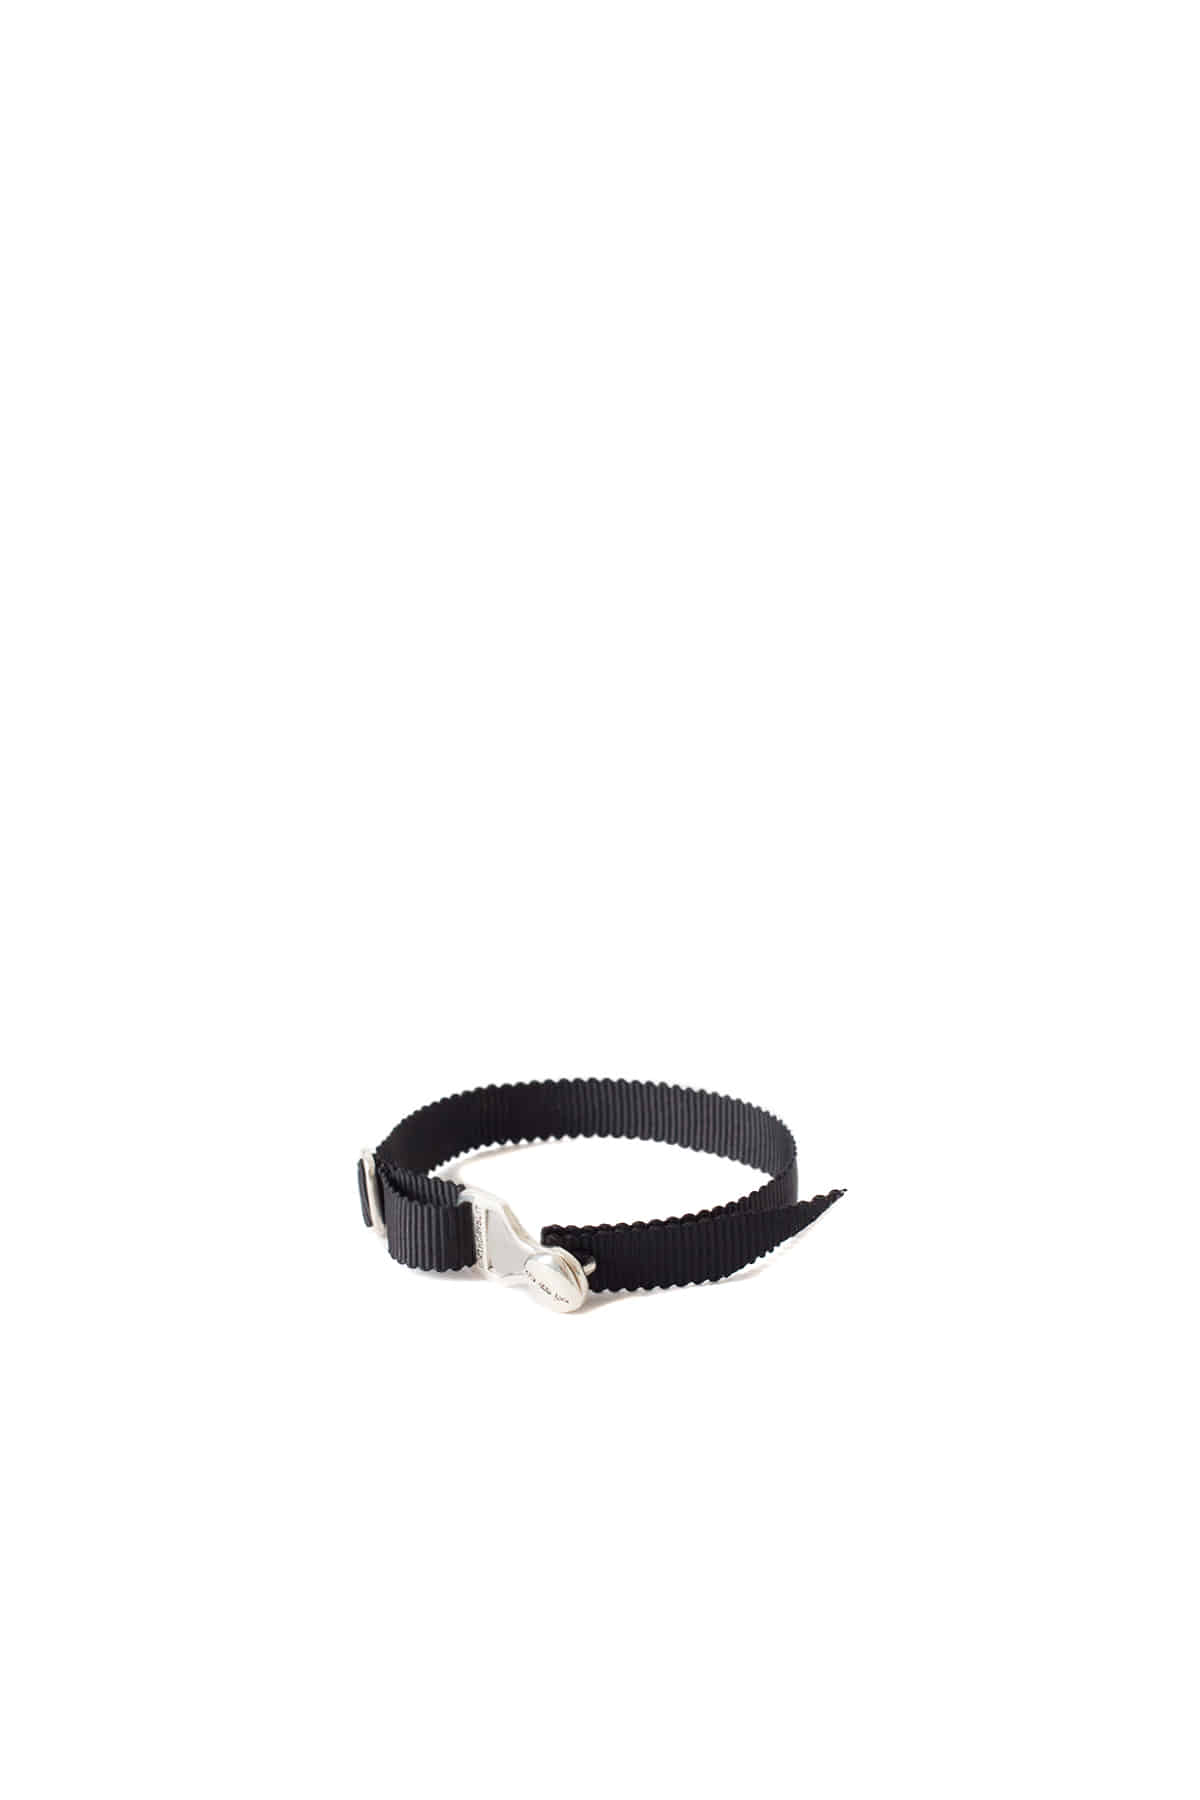 bulletto x BIRTHDAYSUIT : The Bracelet